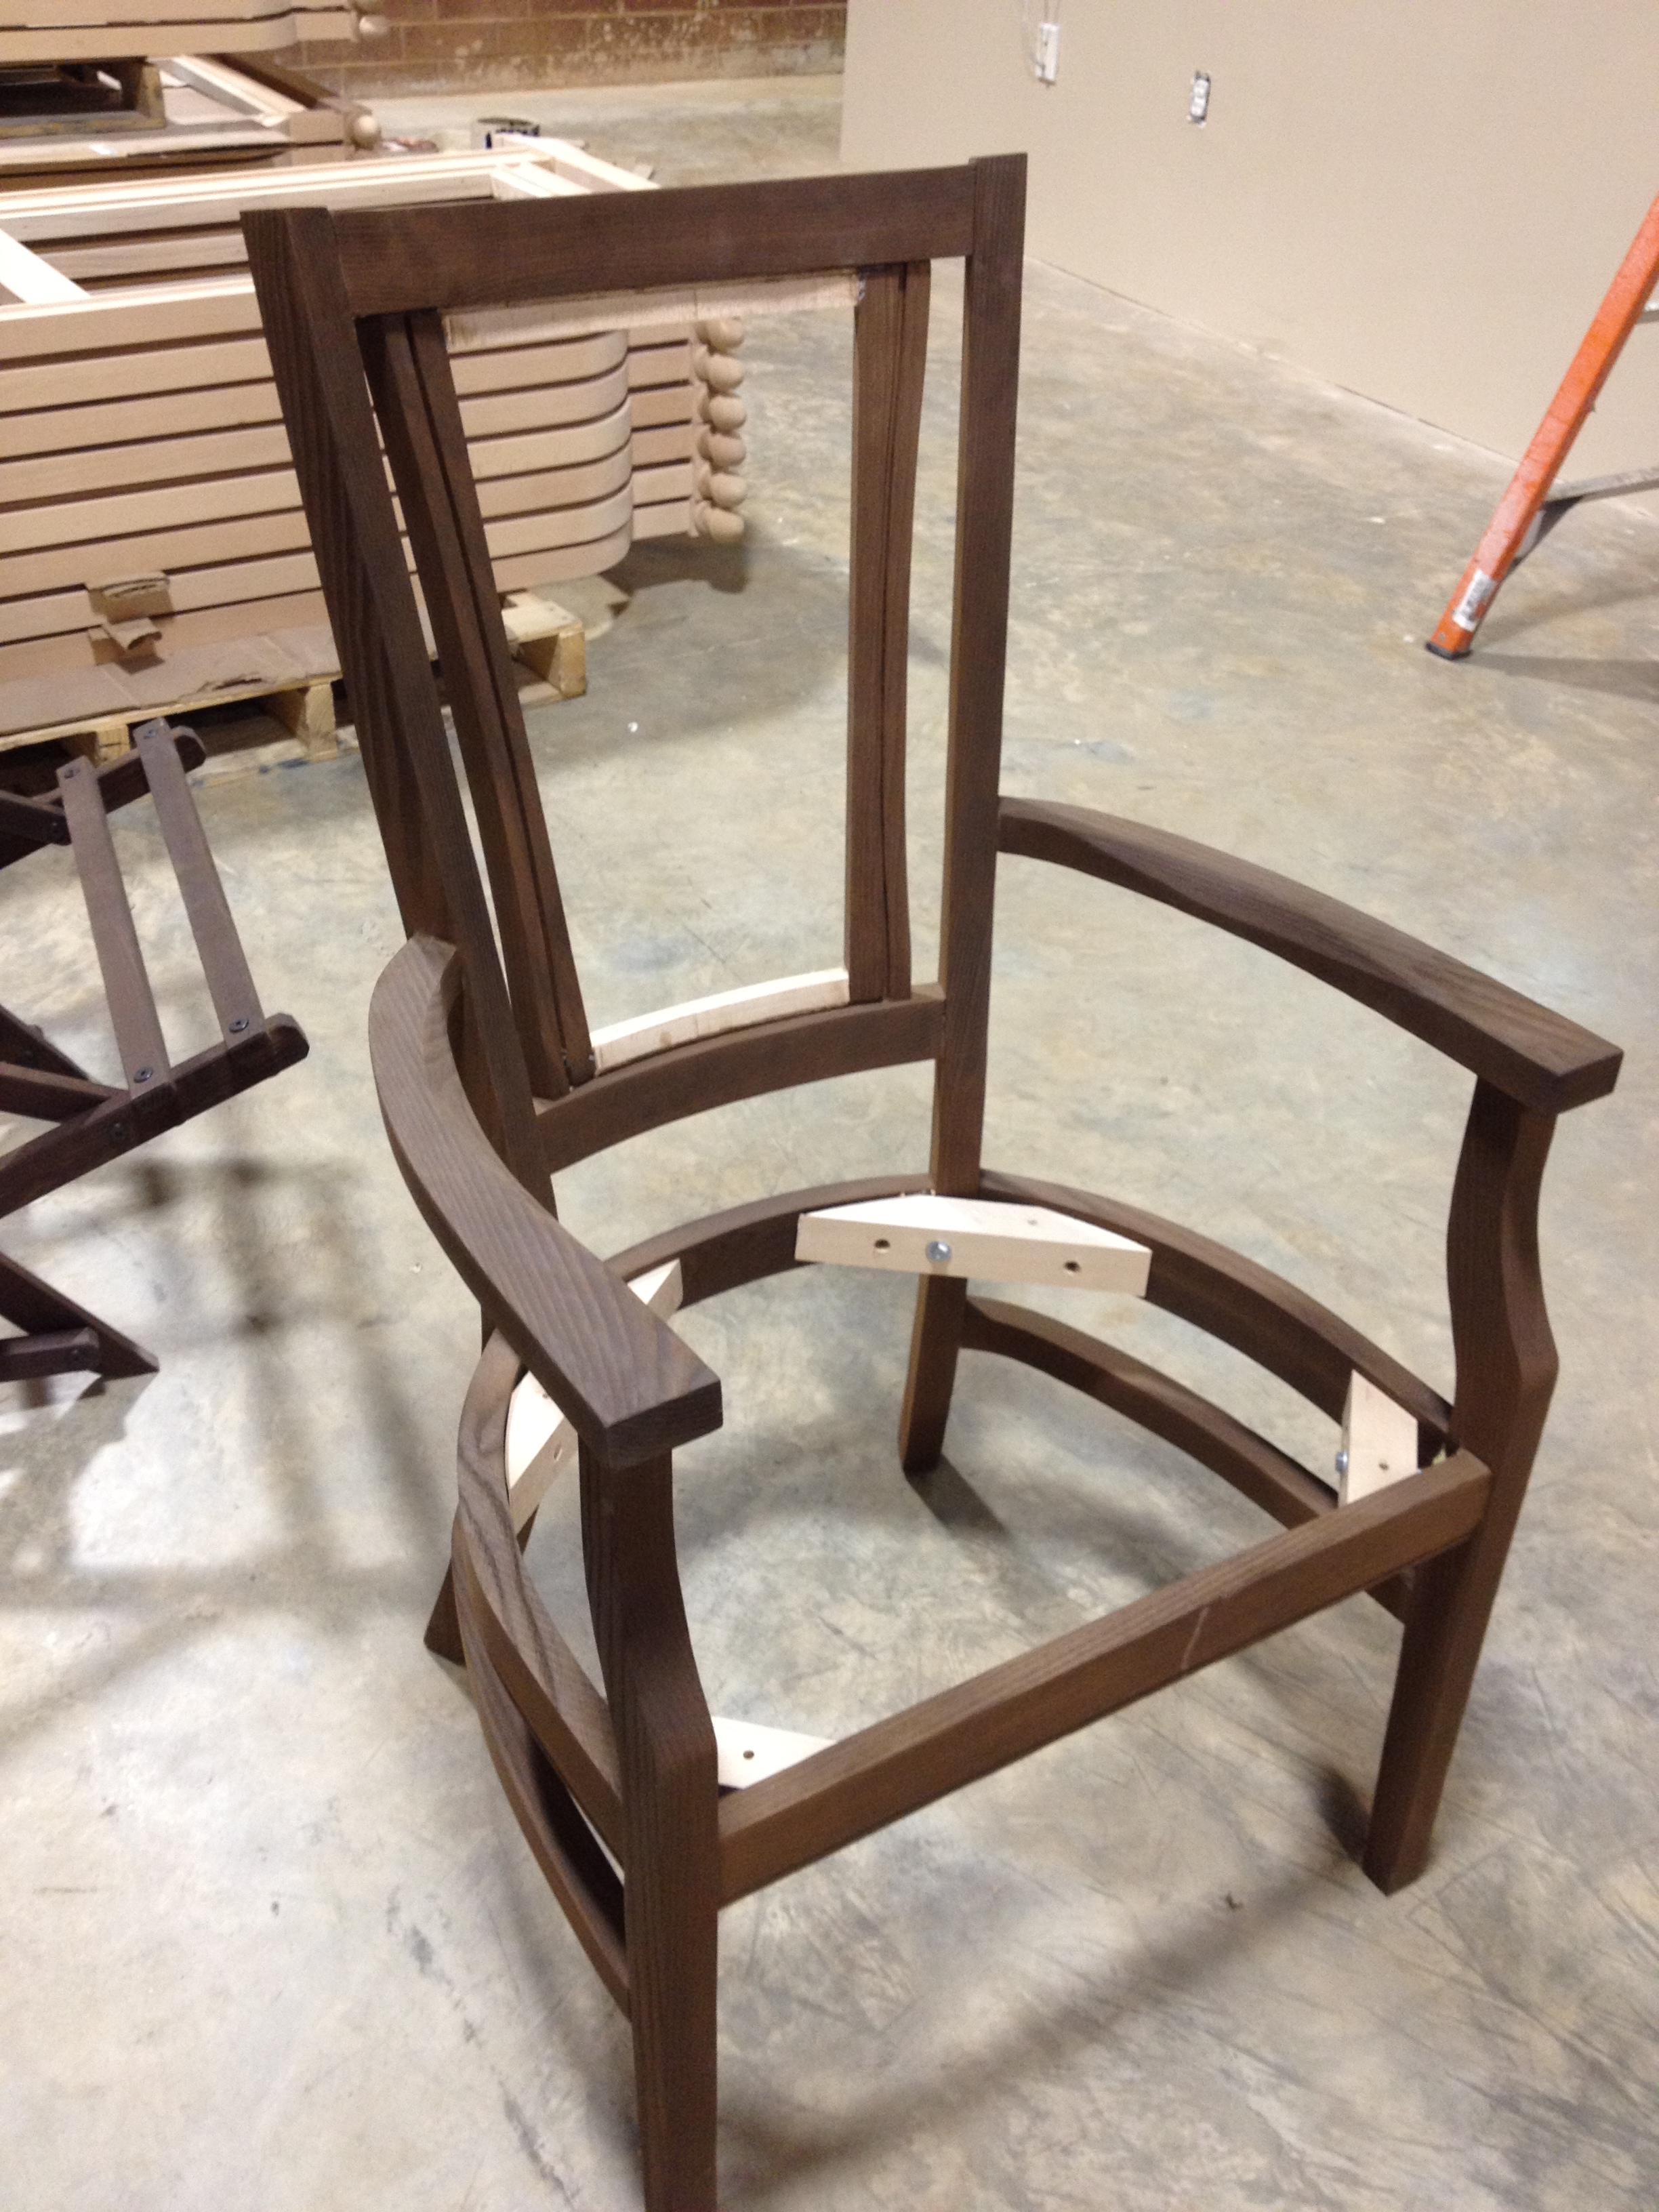 Outdoor chair 1